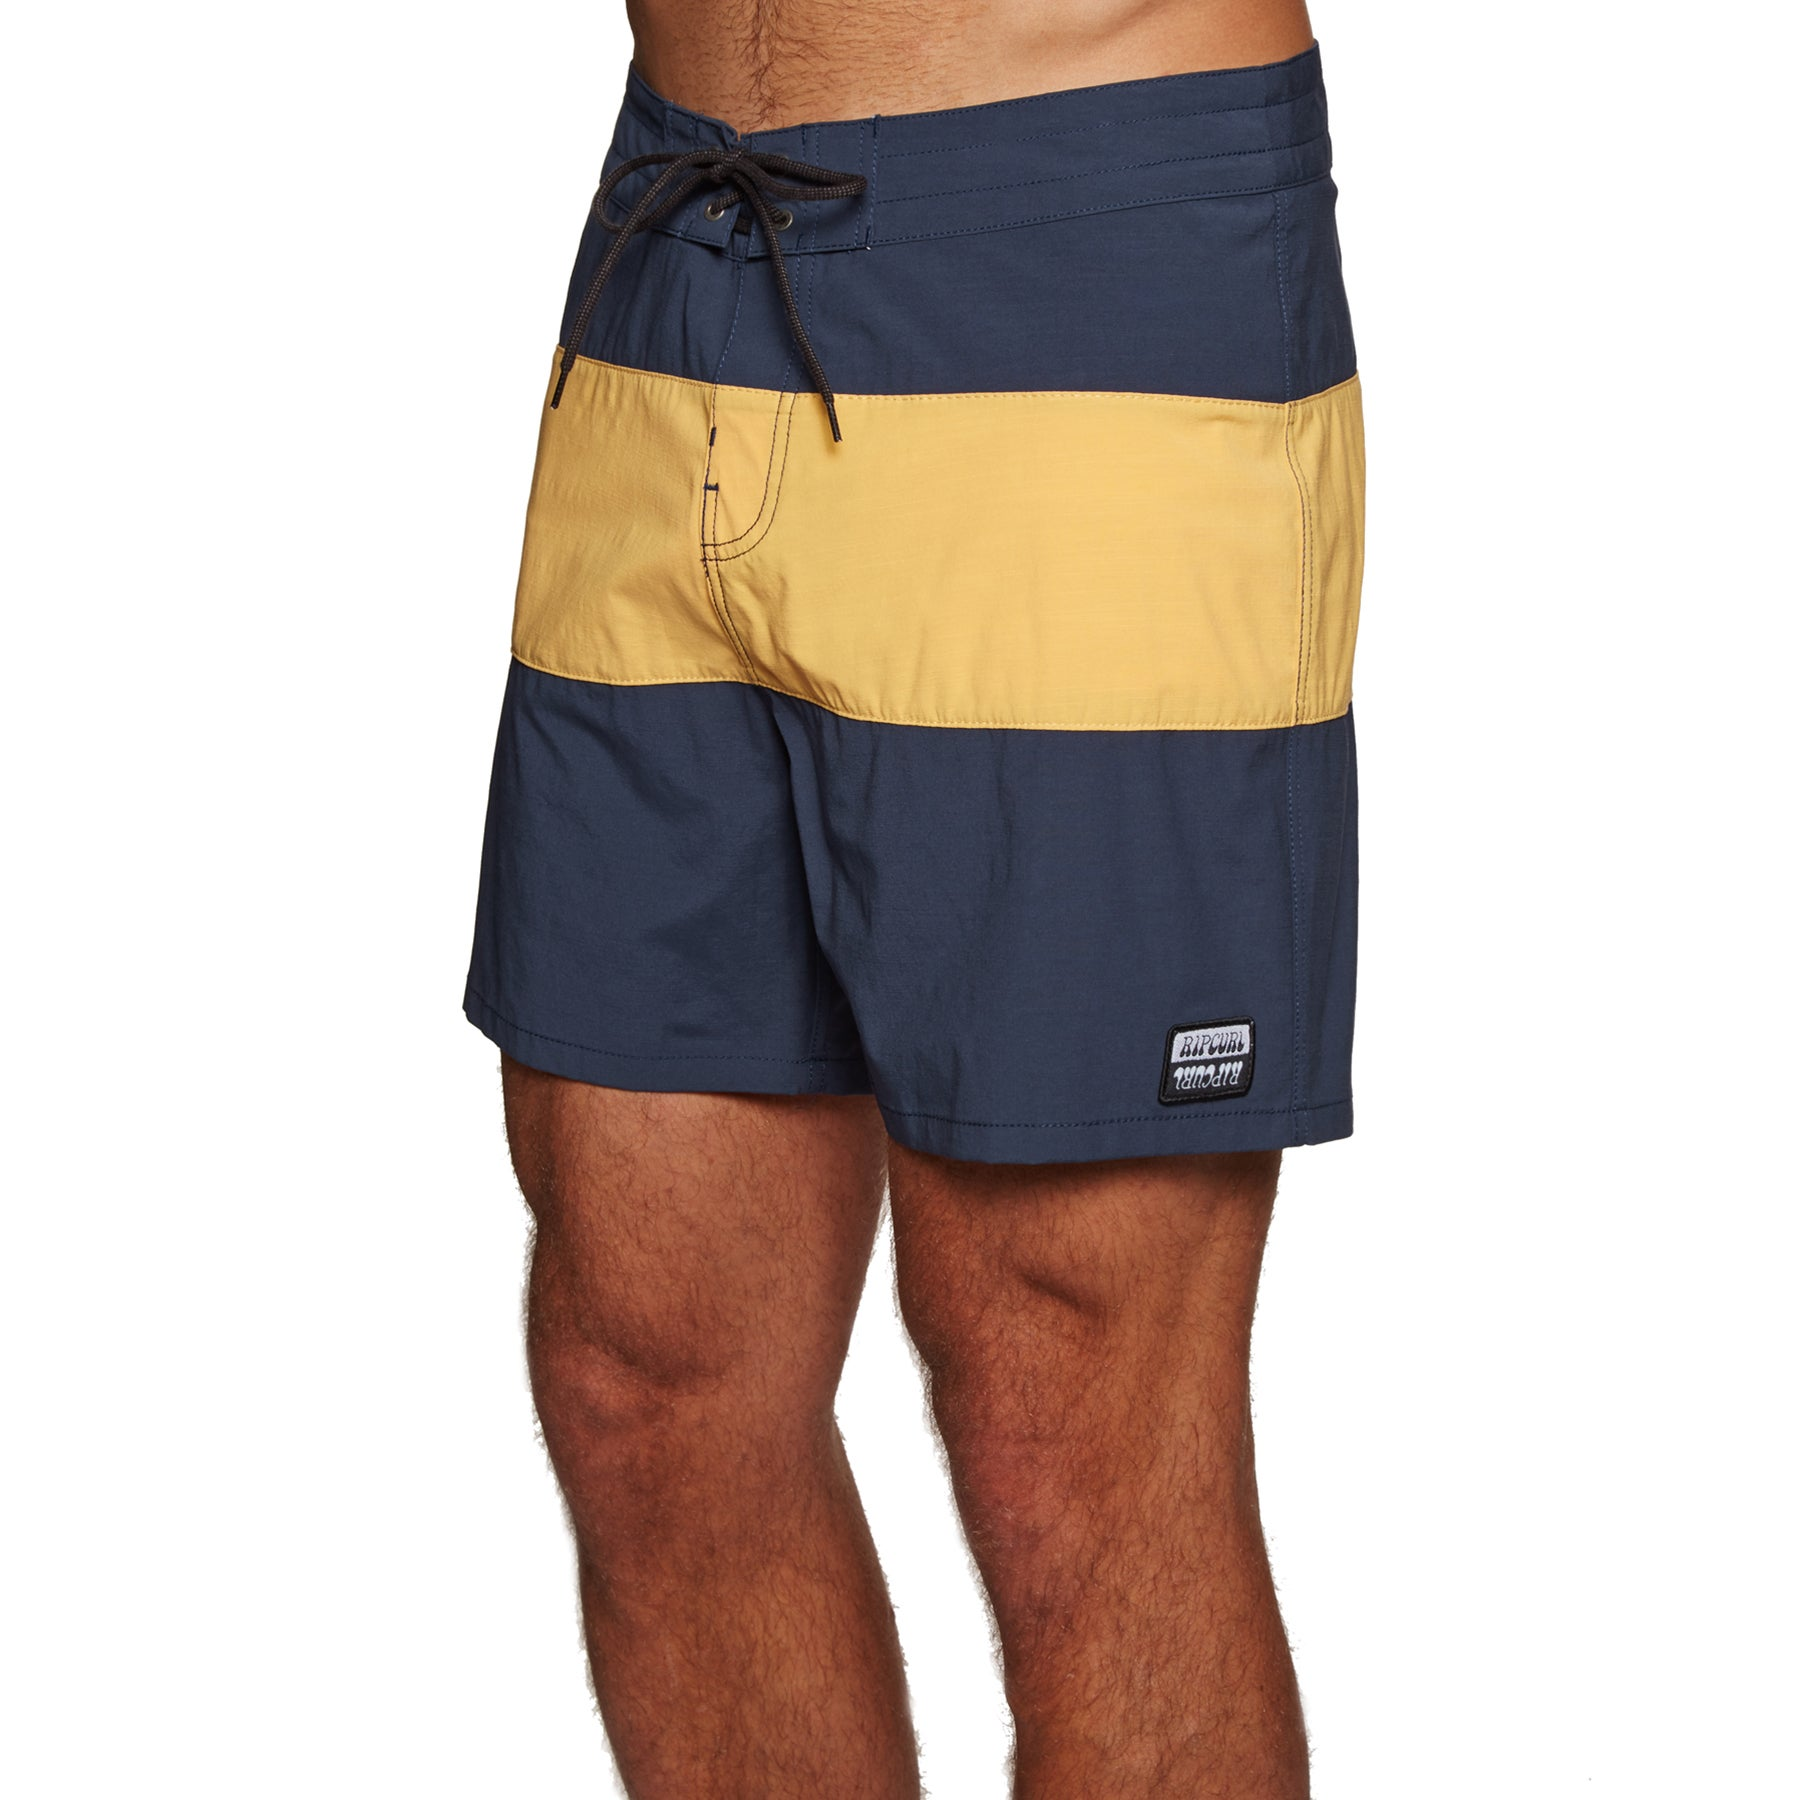 Rip Curl Retro Paneled 17in Boardshorts - Dirty Yellow